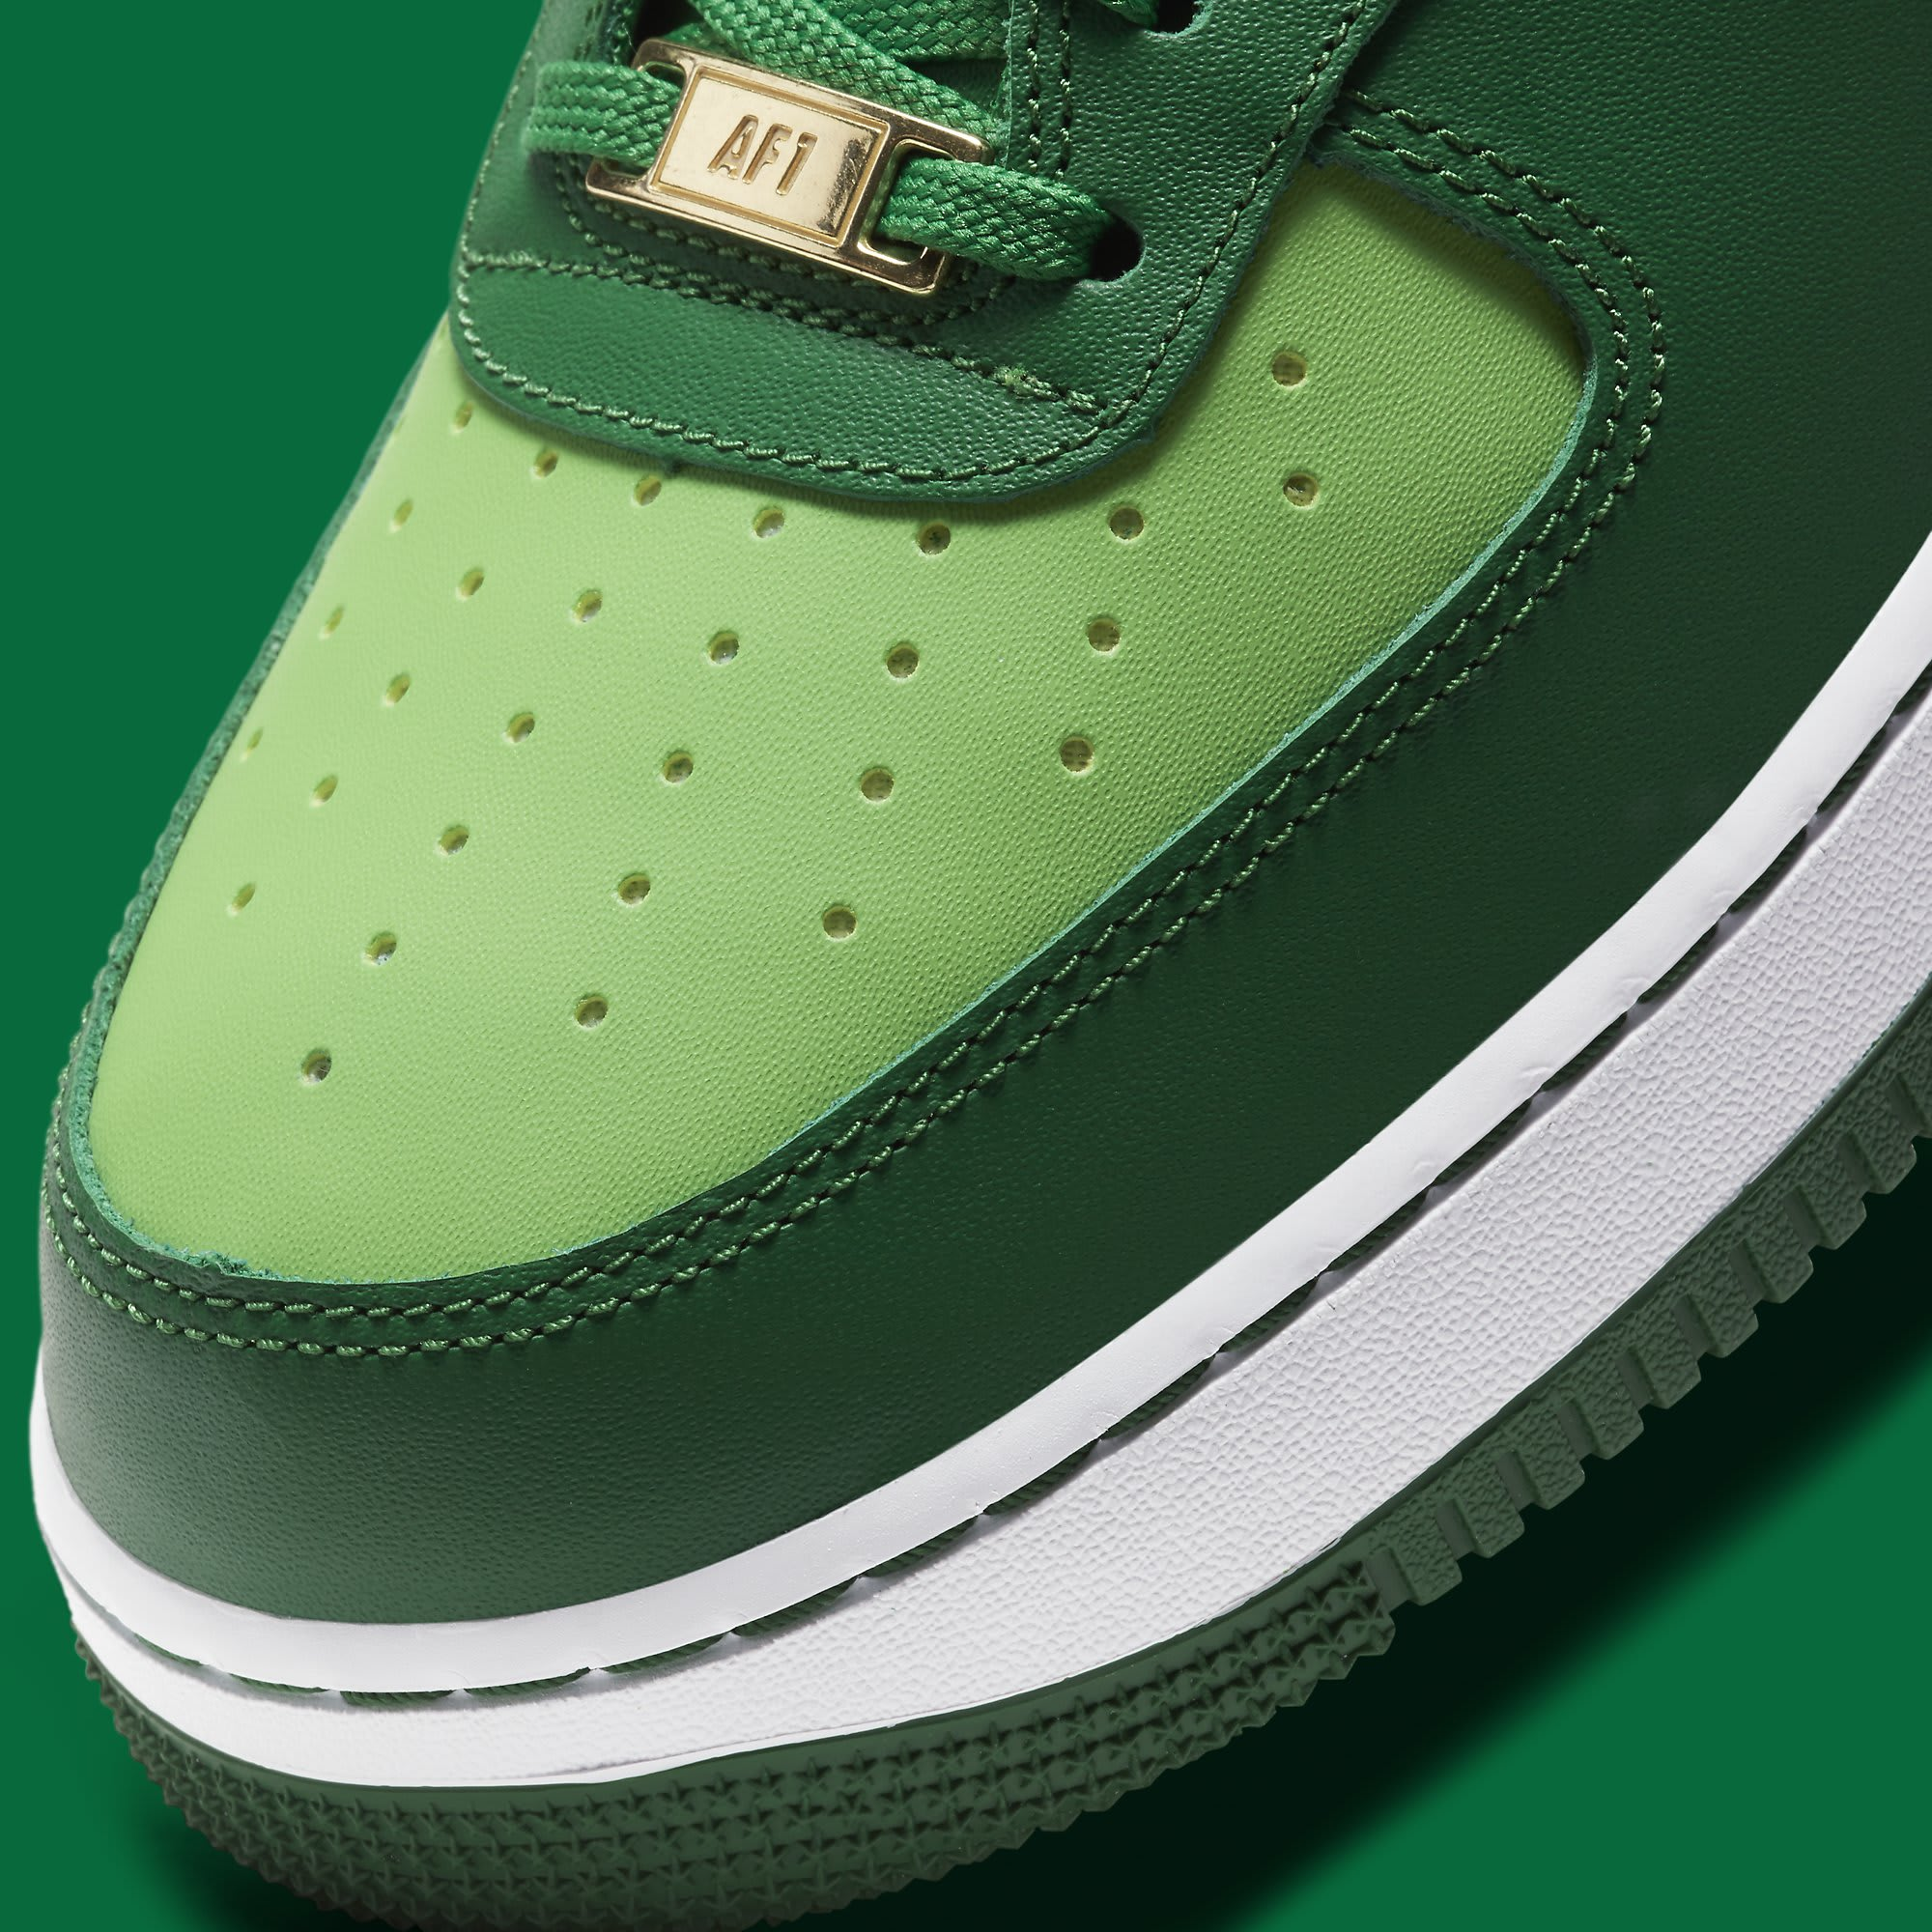 Nike Air Force 1 Low 'St. Patrick's Day' DD8458-300 Toe